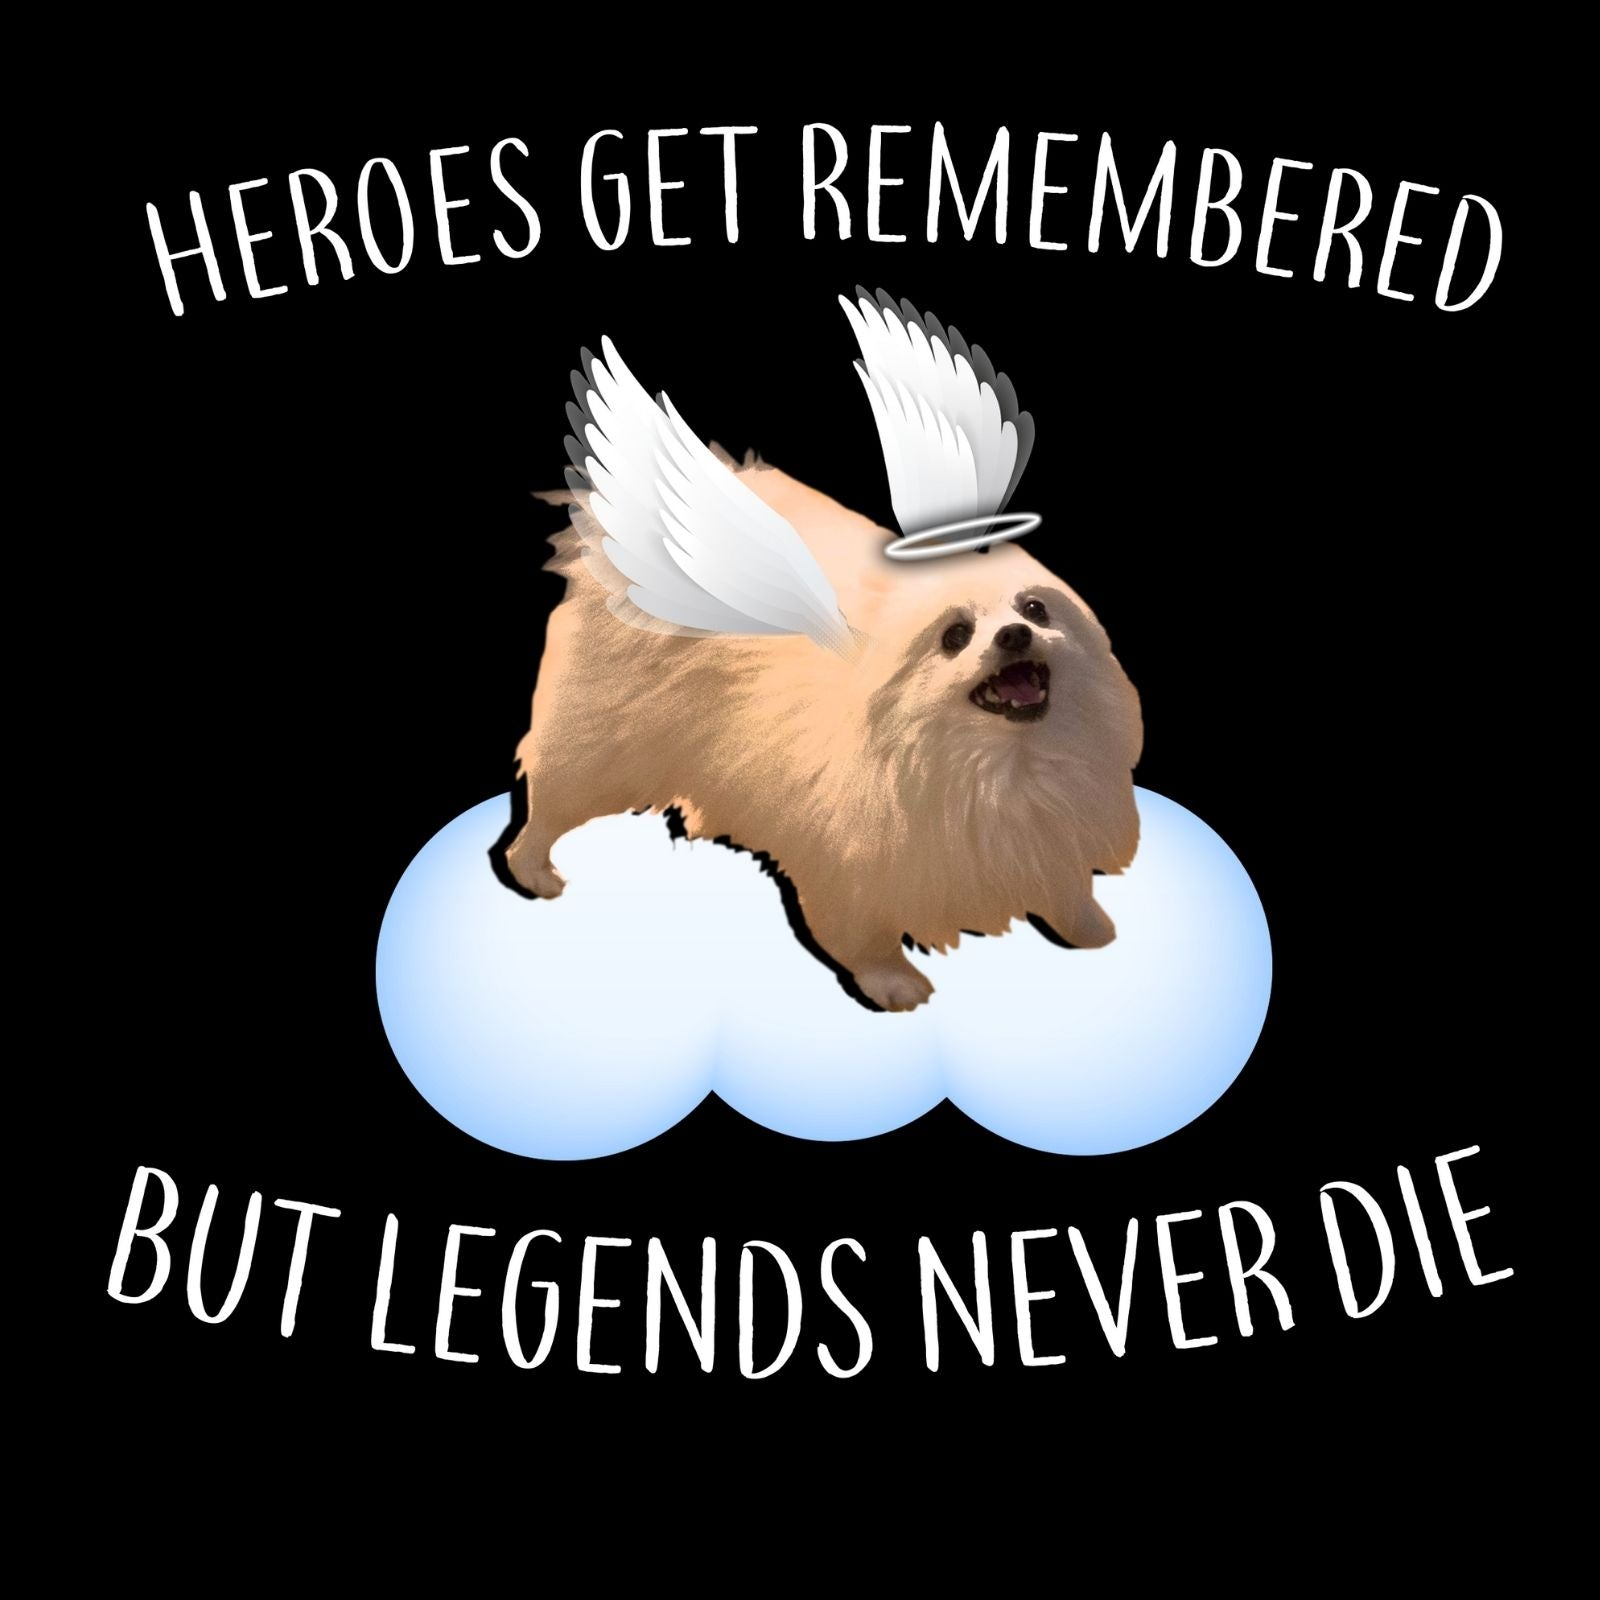 Heroes Get Remembered But Legends Never Die - Bastard Graphics